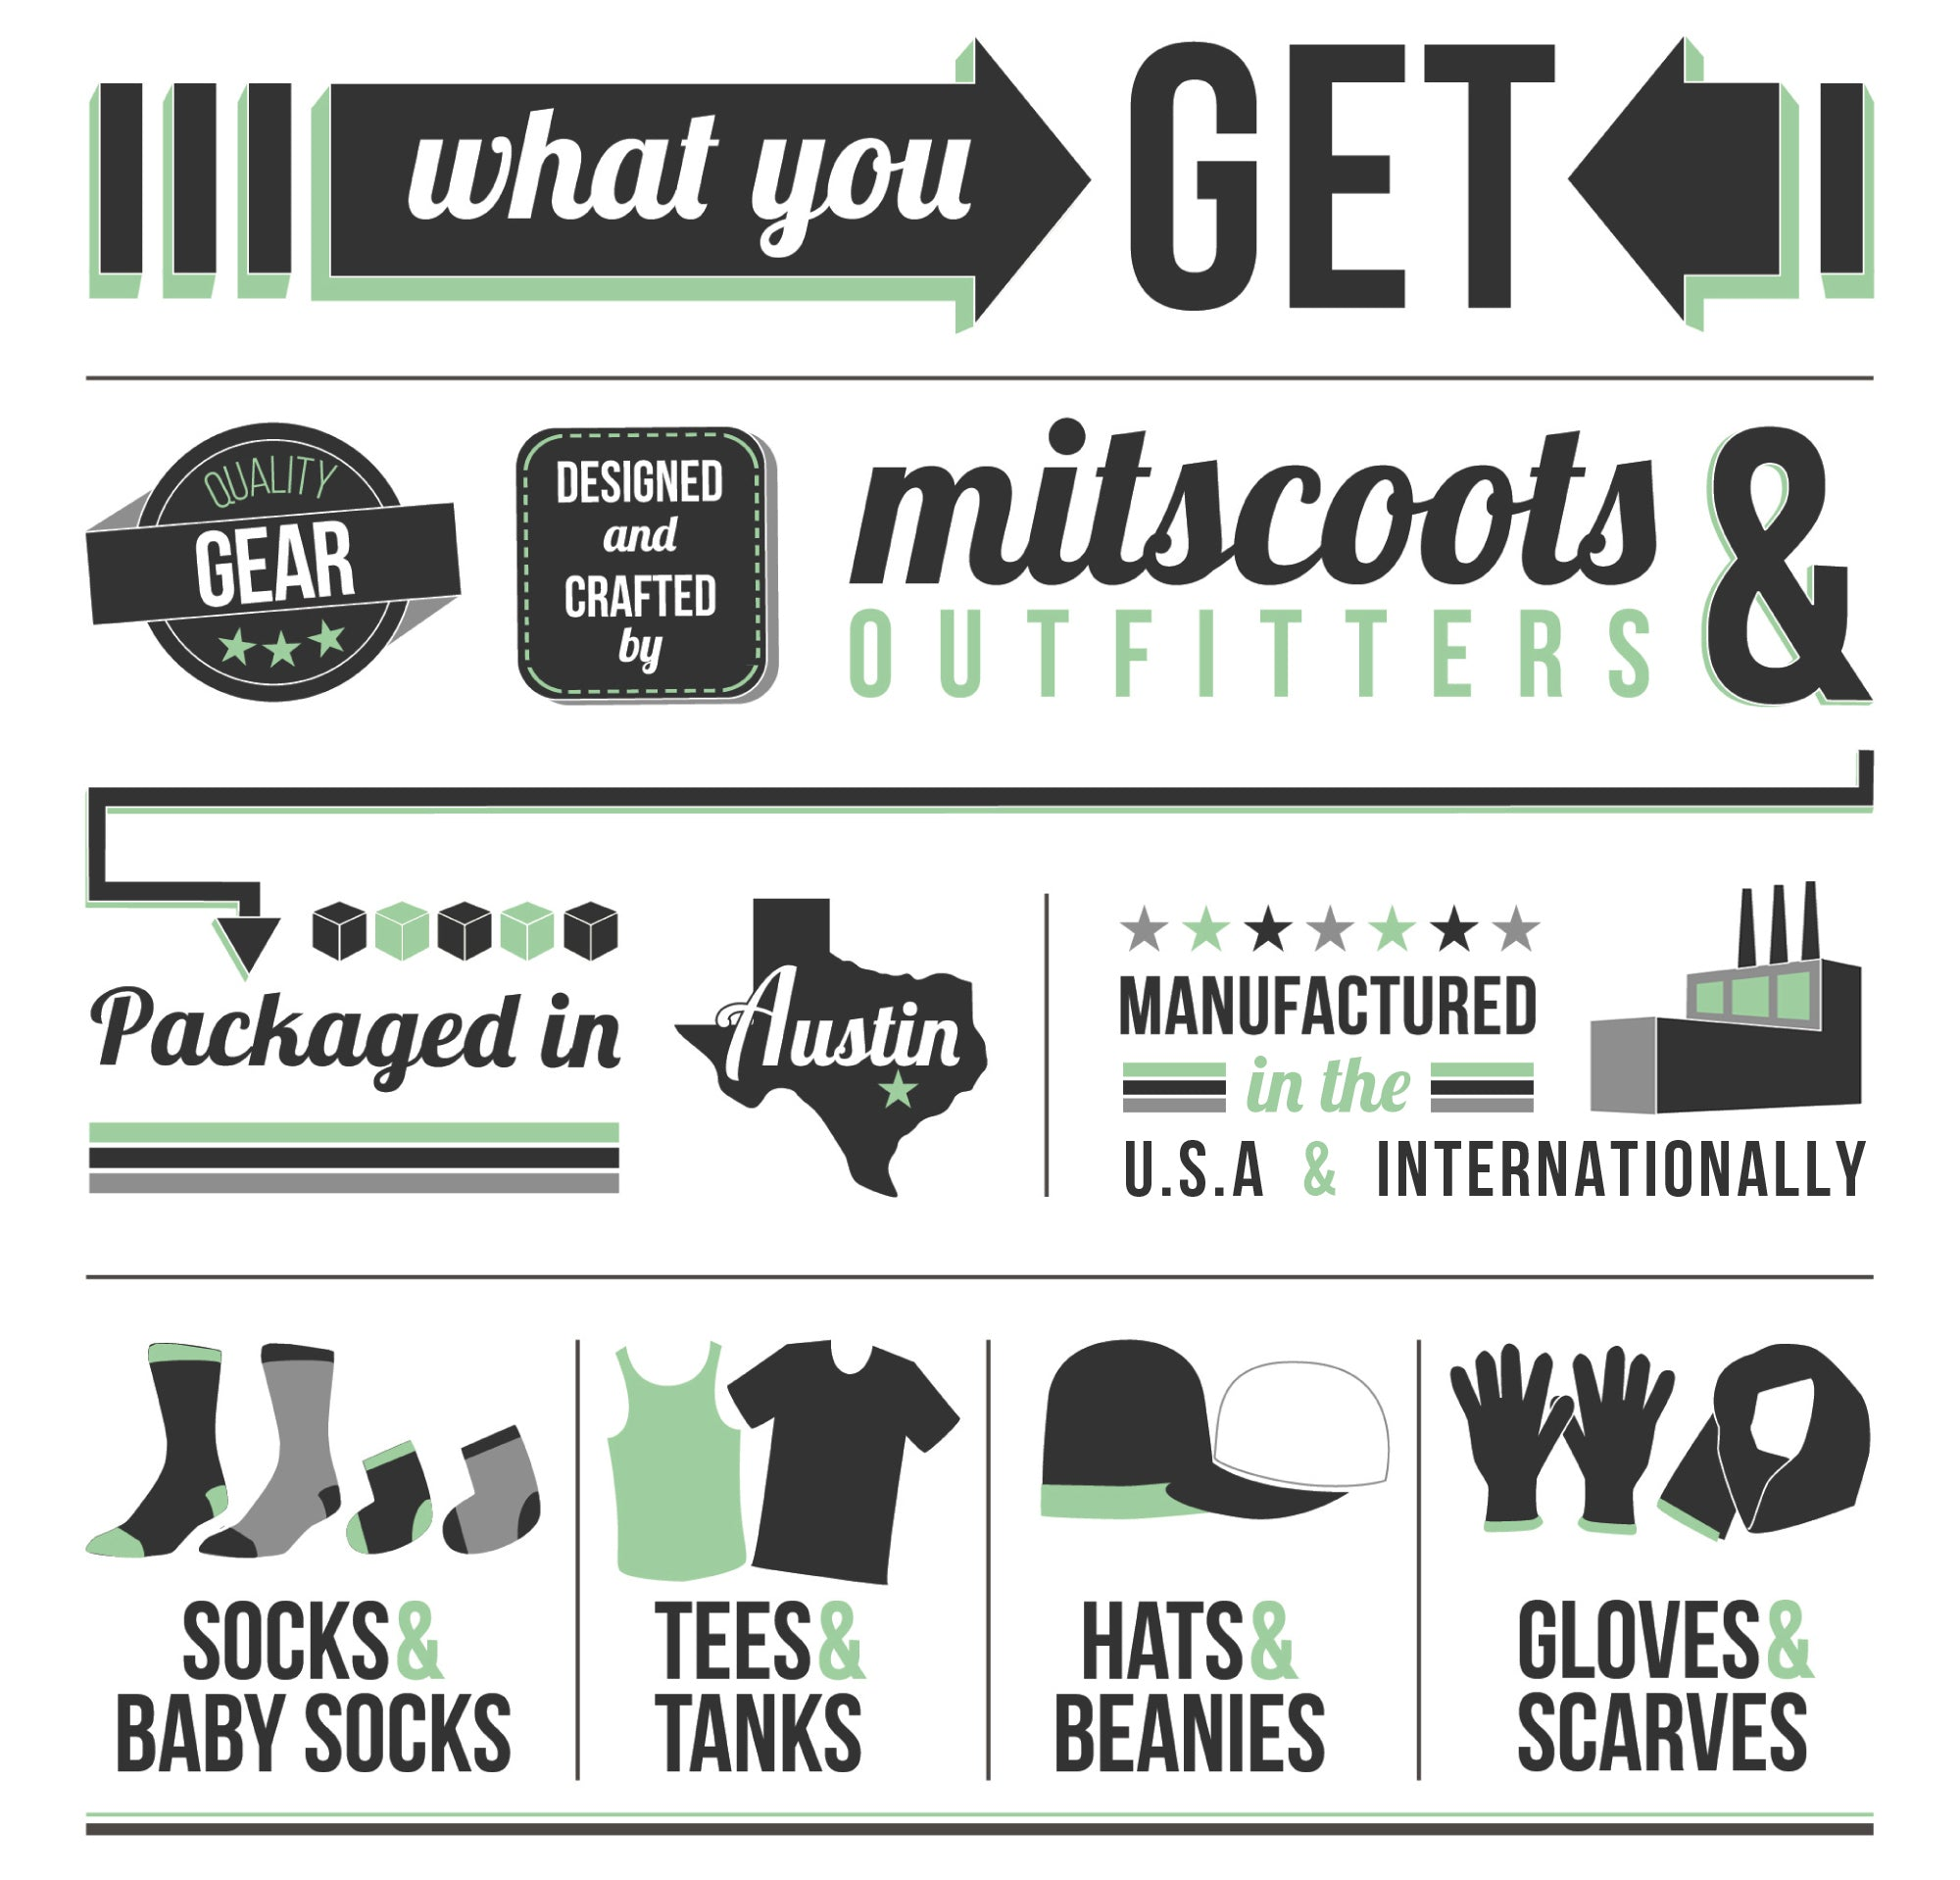 Mitscoots Outfitters